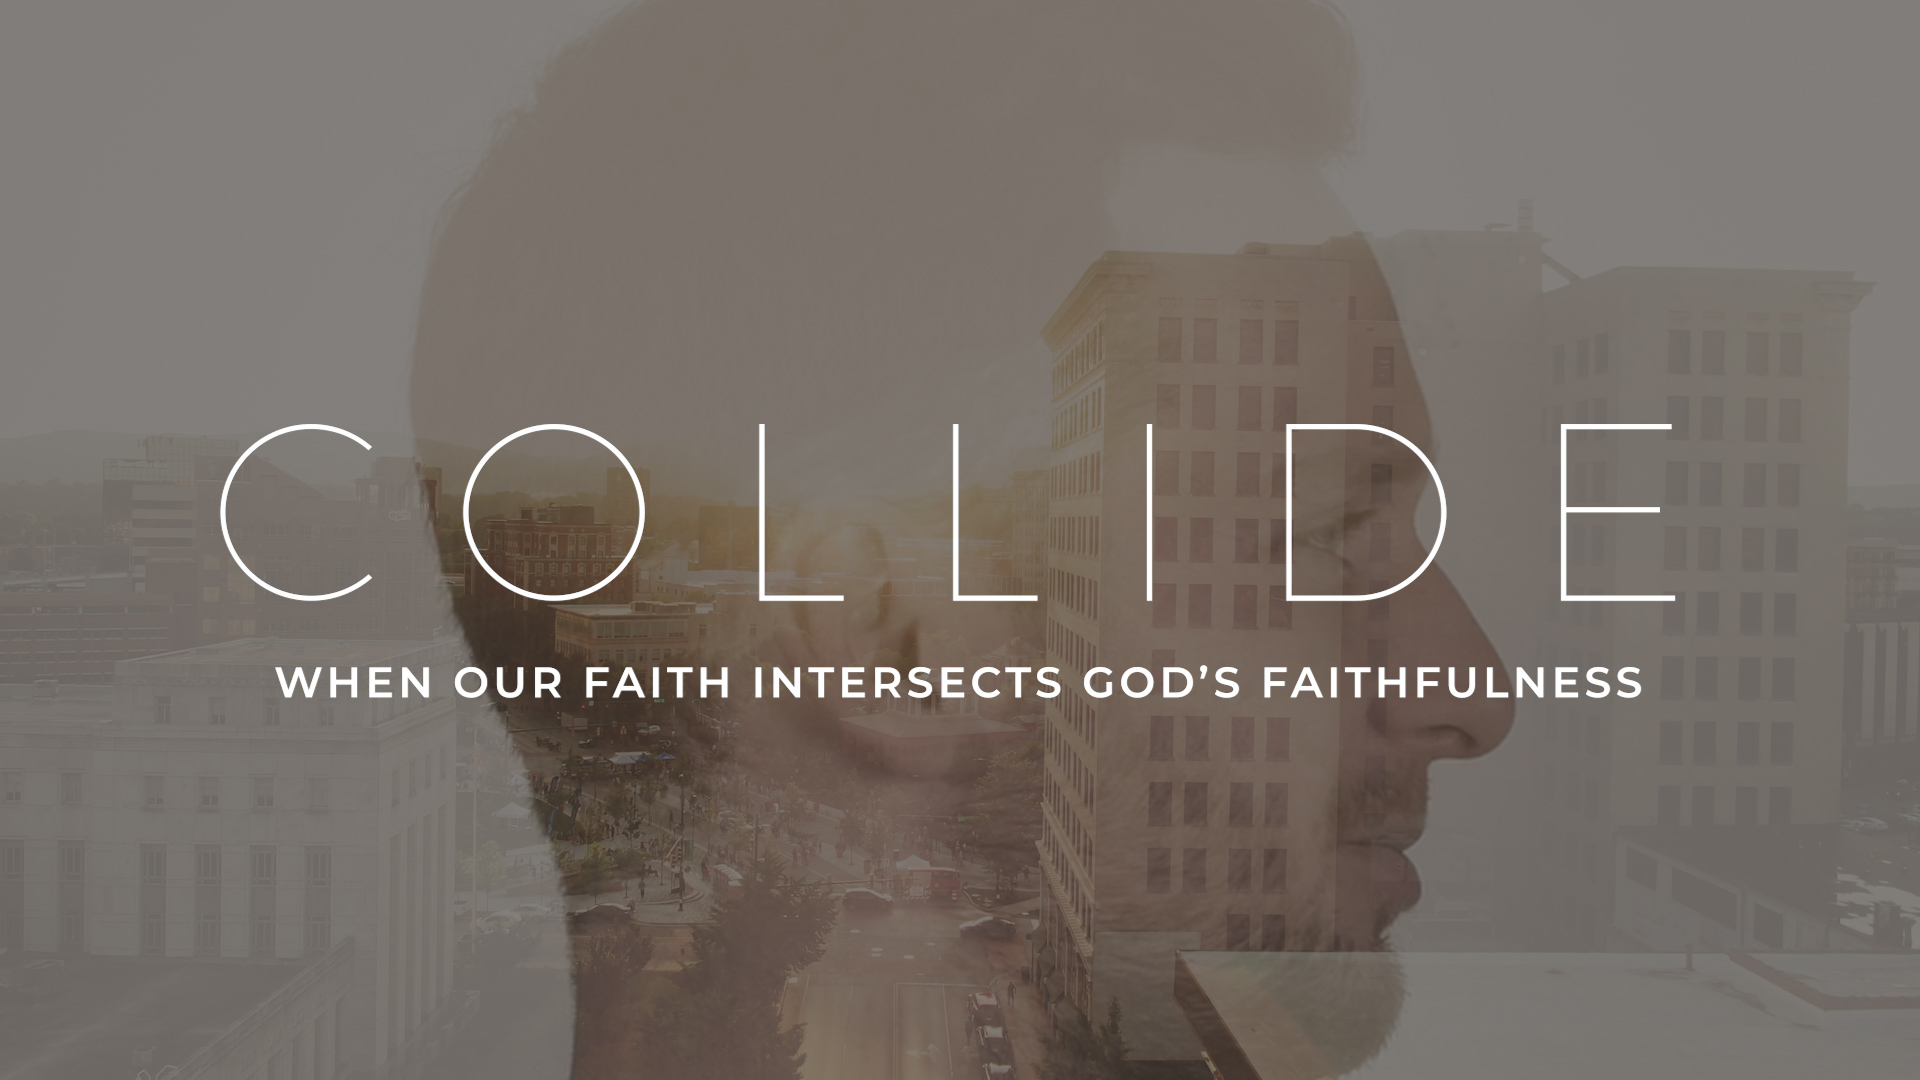 Collide: Perspective for Your Story